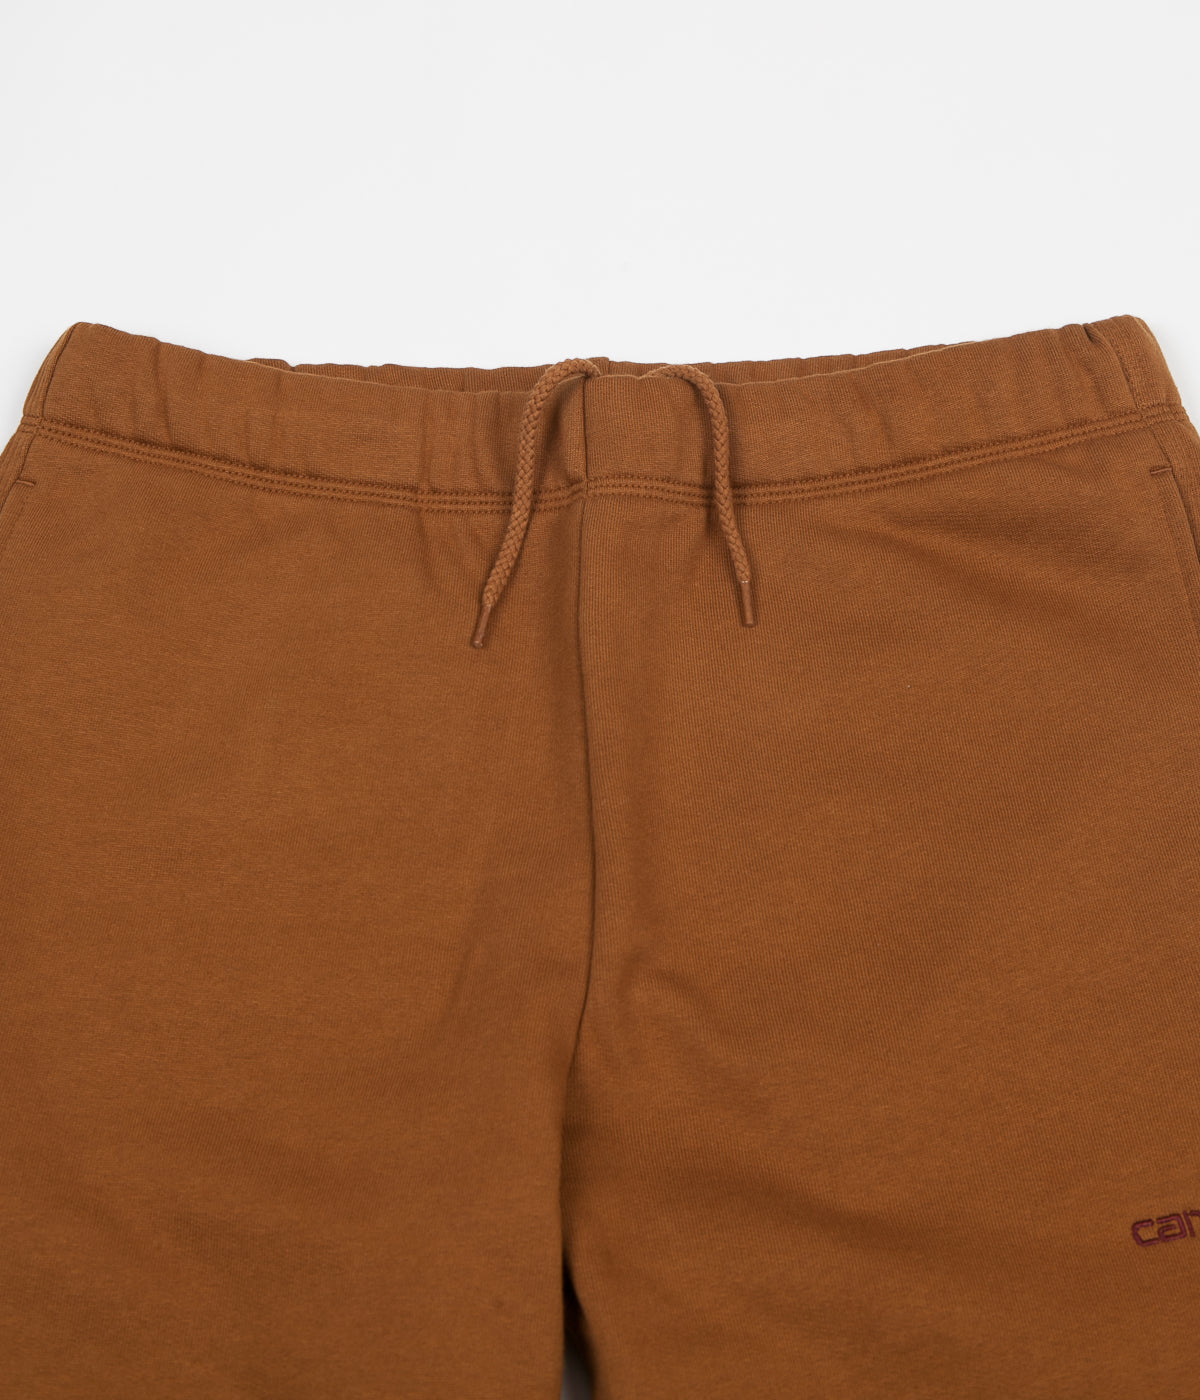 Carhartt American Script Sweatpants - Hamilton Brown / Gold